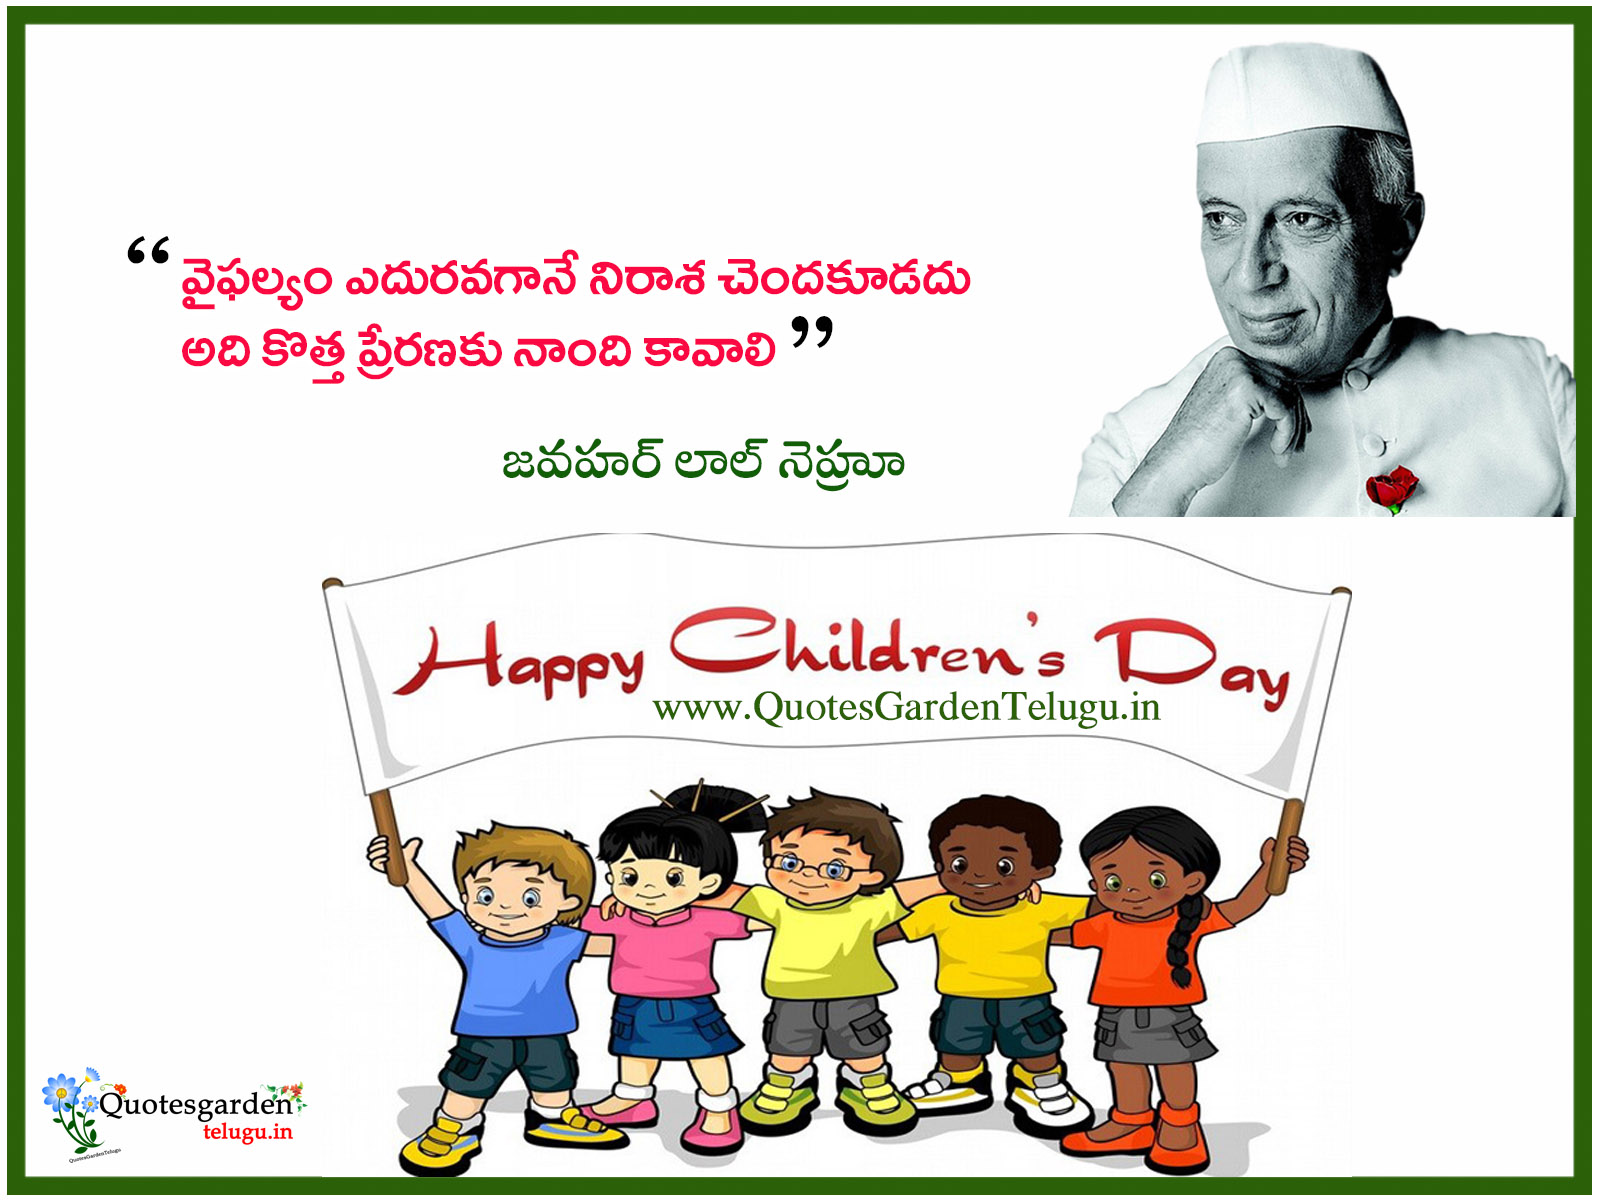 Happy Childrens Day Telugu Quotes greetings wishes images   QUOTES GARDEN  TELUGU   Telugu Quotes   English Quotes   Hindi Quotes